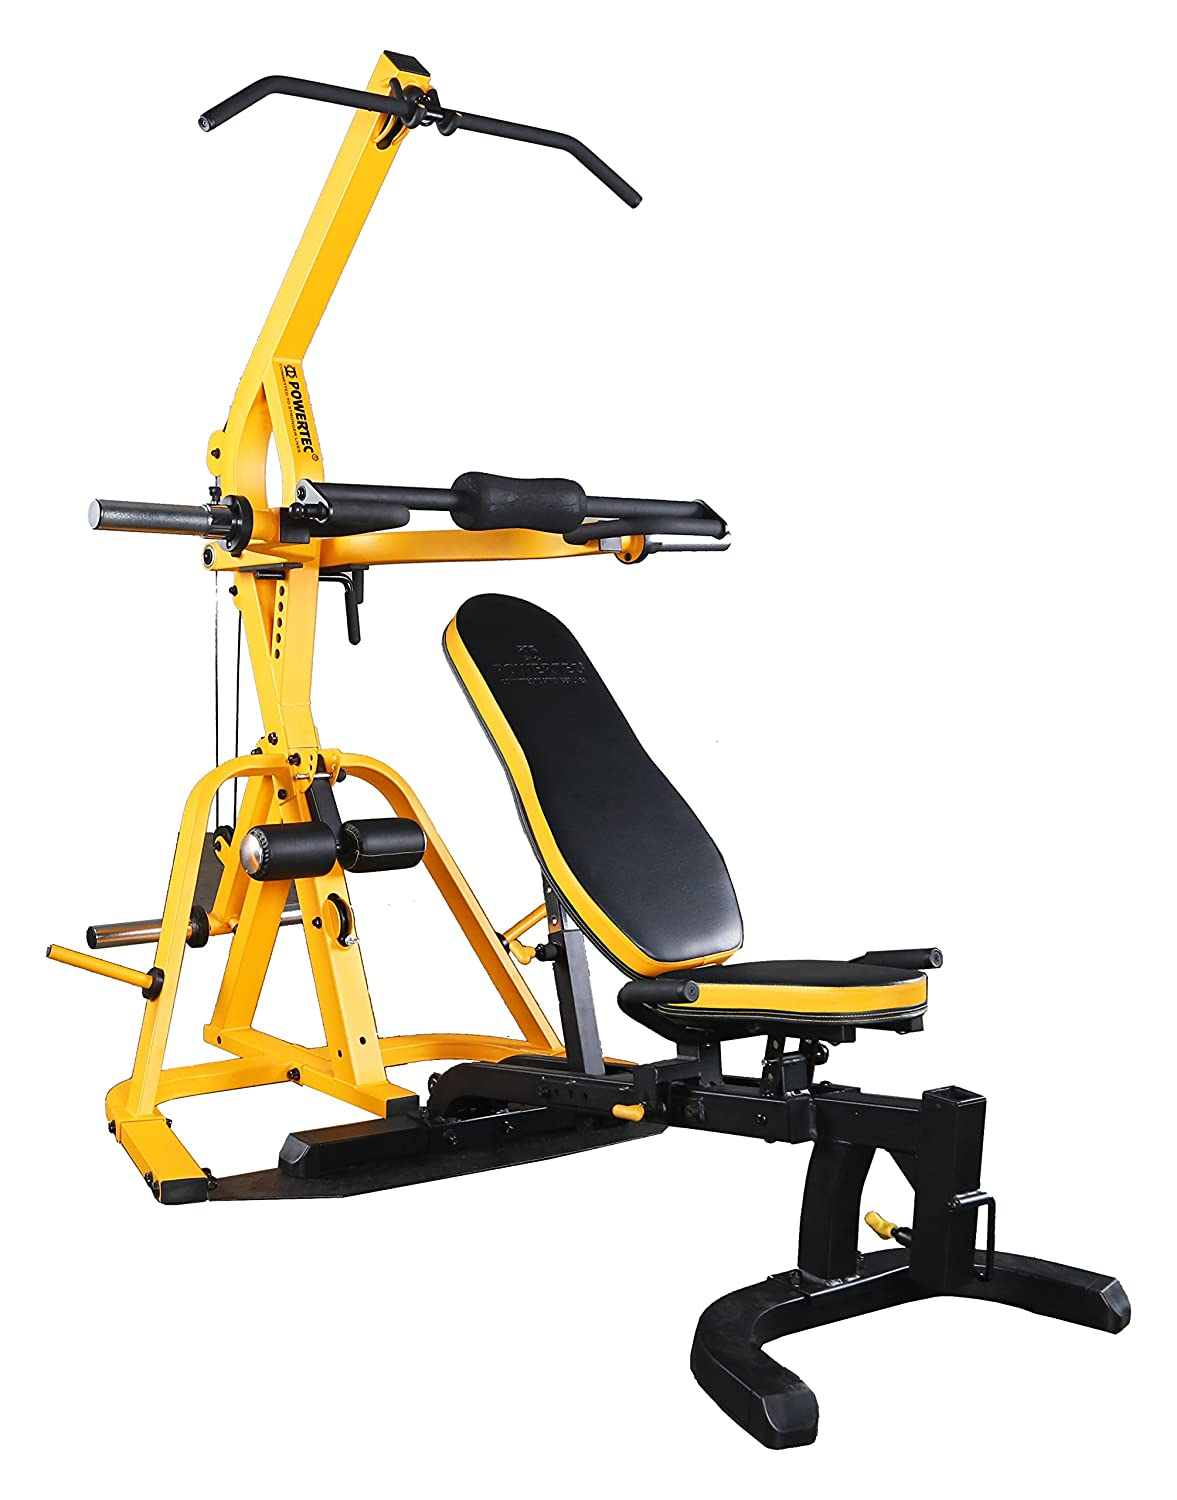 Our Recommended Weight Bench